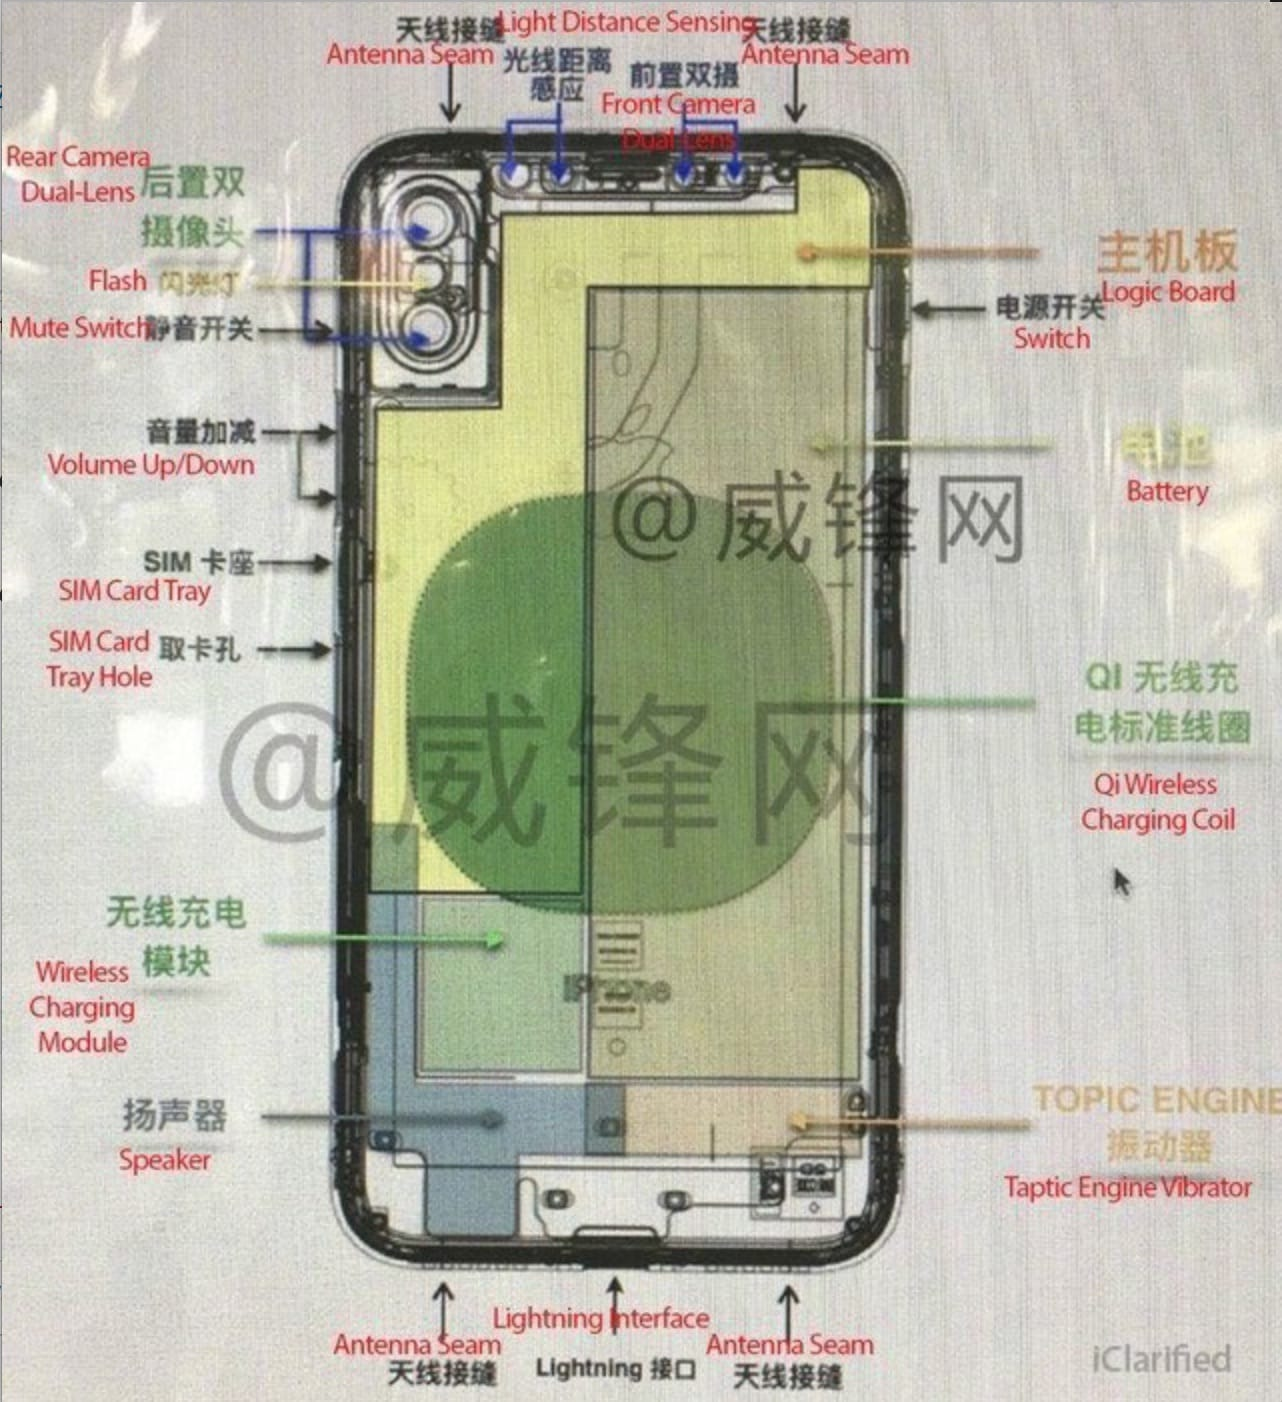 Leaked IPhone 8 Schematic Reveals Dual Lens Front Camera And More